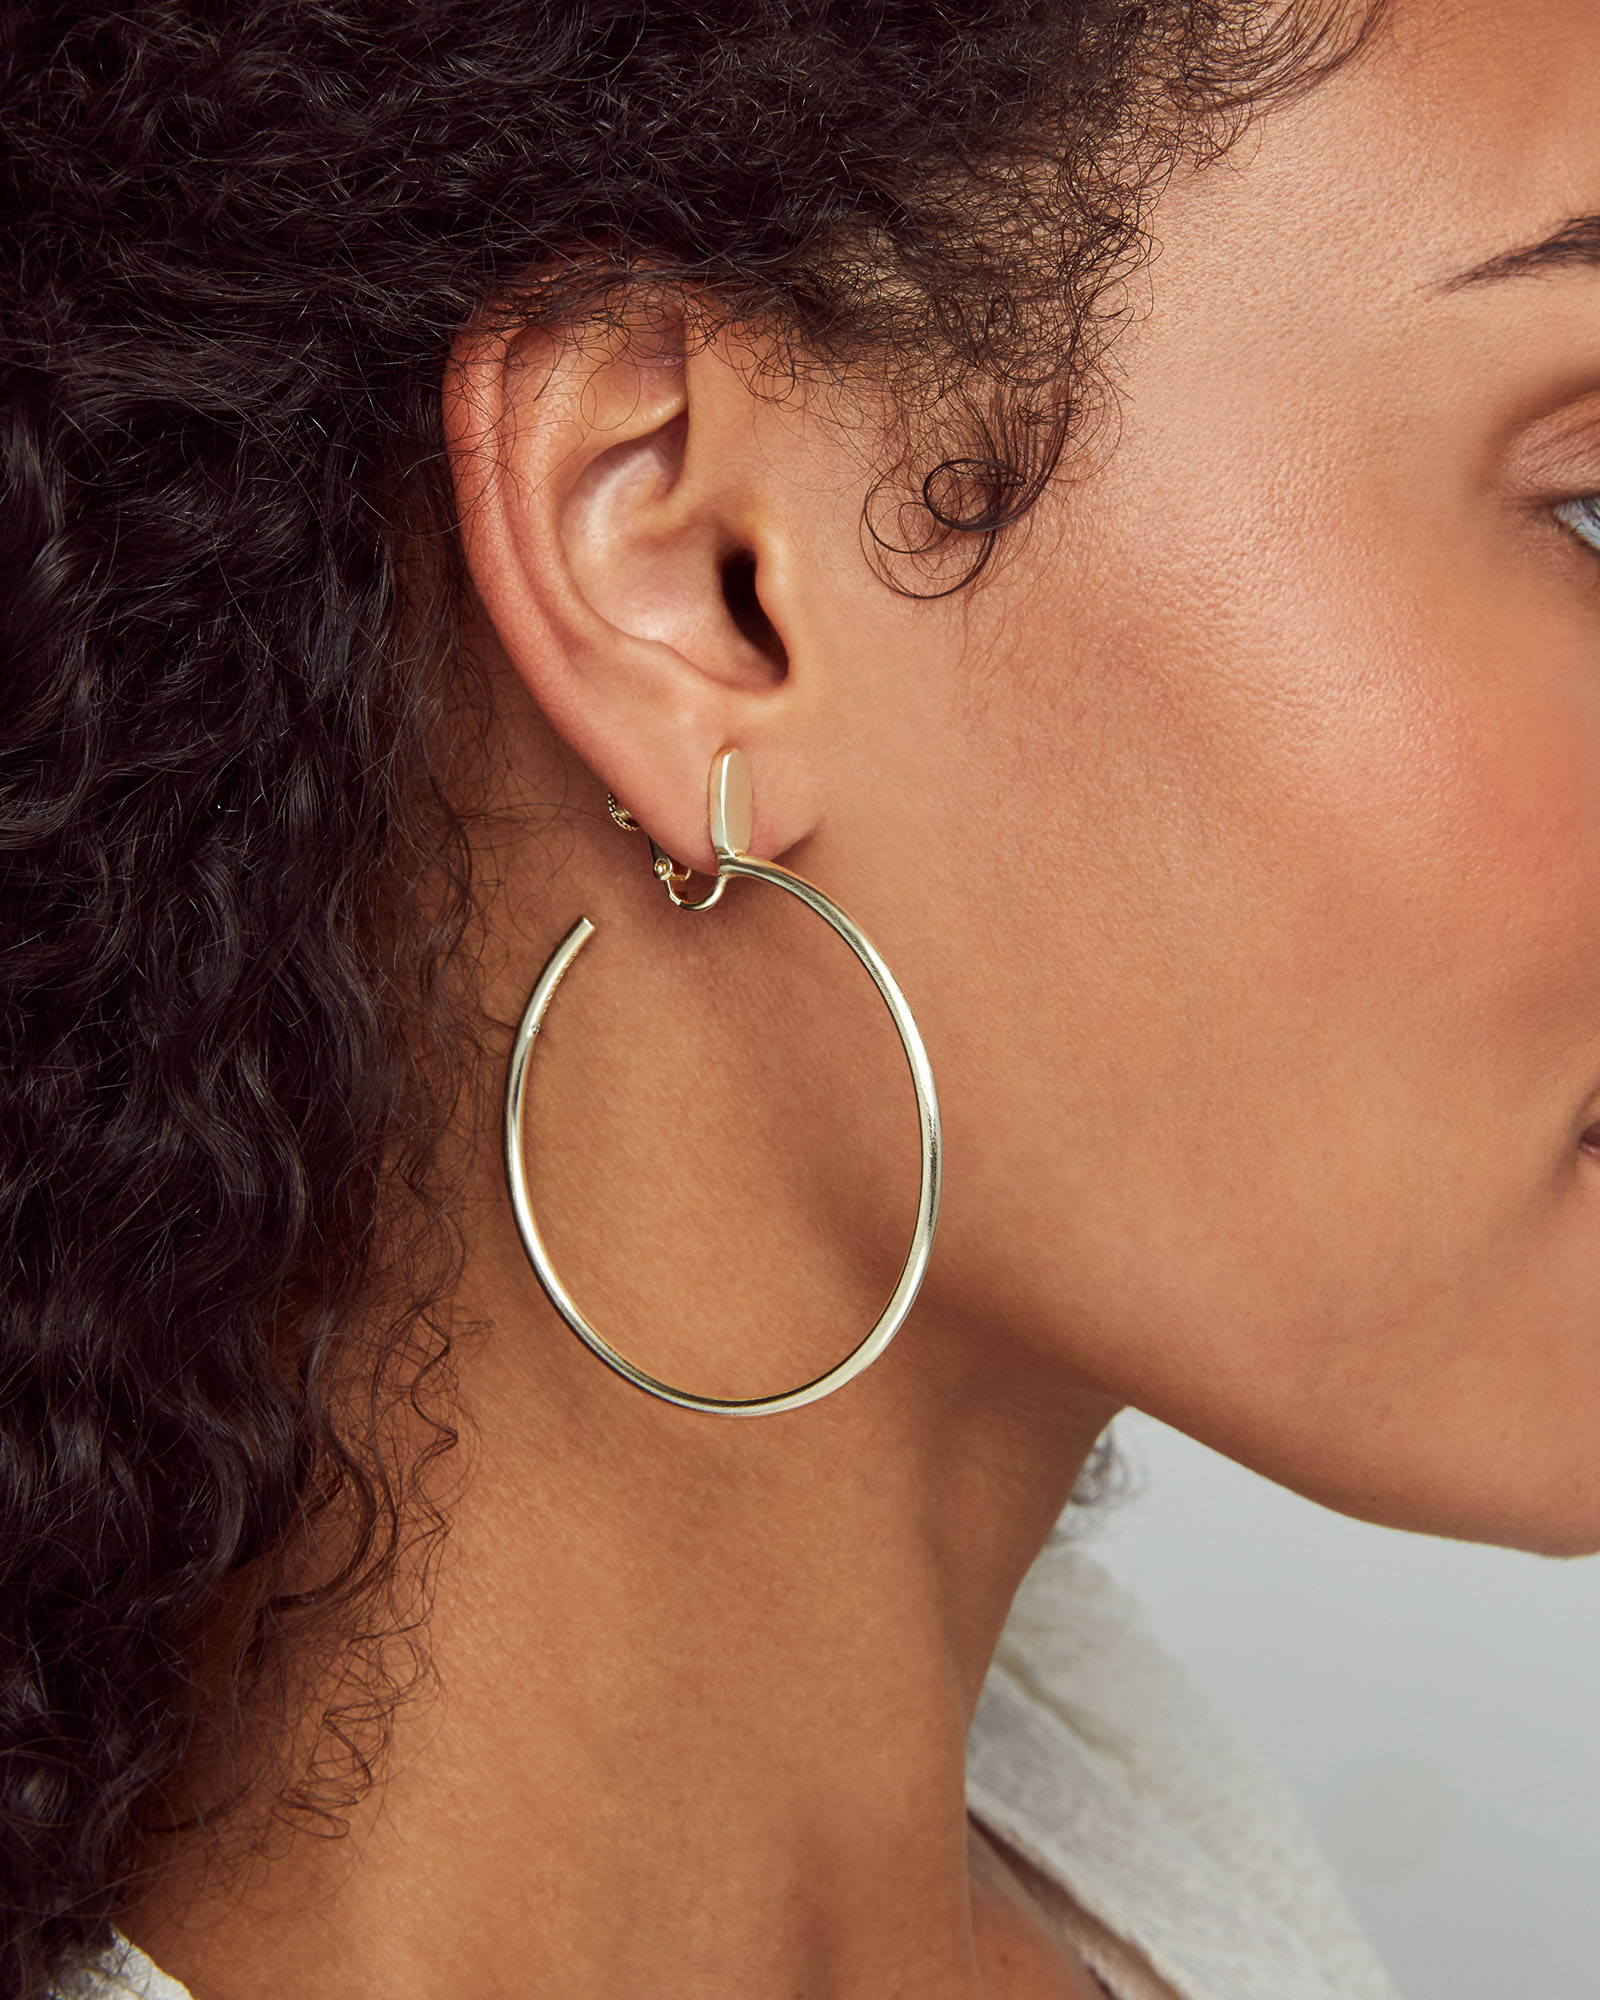 Small Pepper Clip On Hoop Earrings In Rose Gold